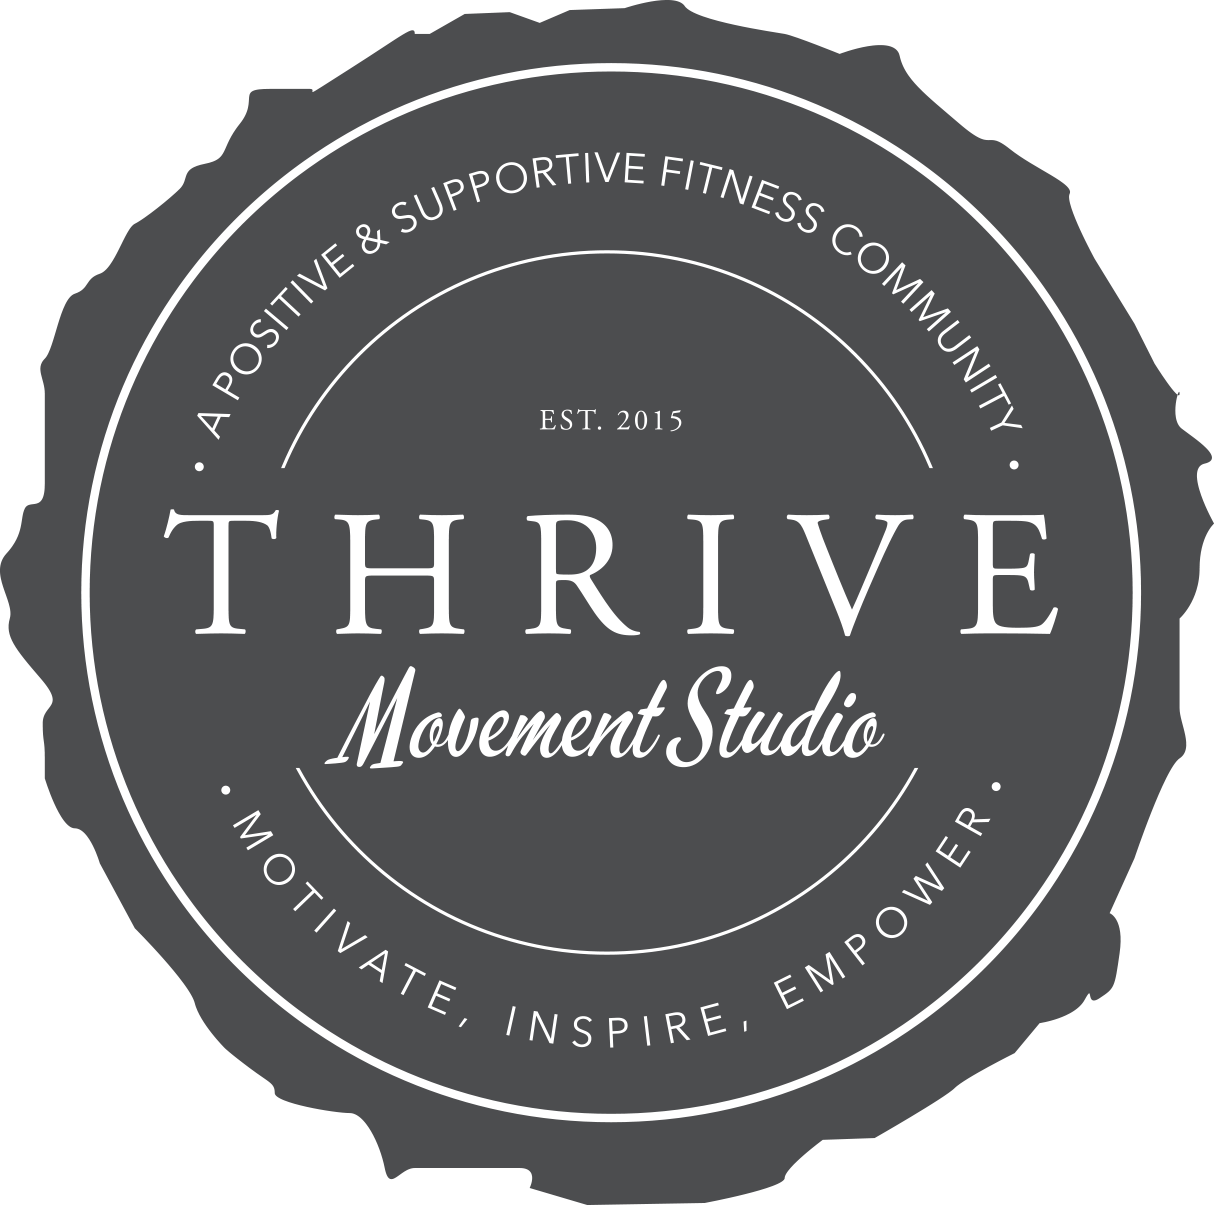 Thrive Movement Studio